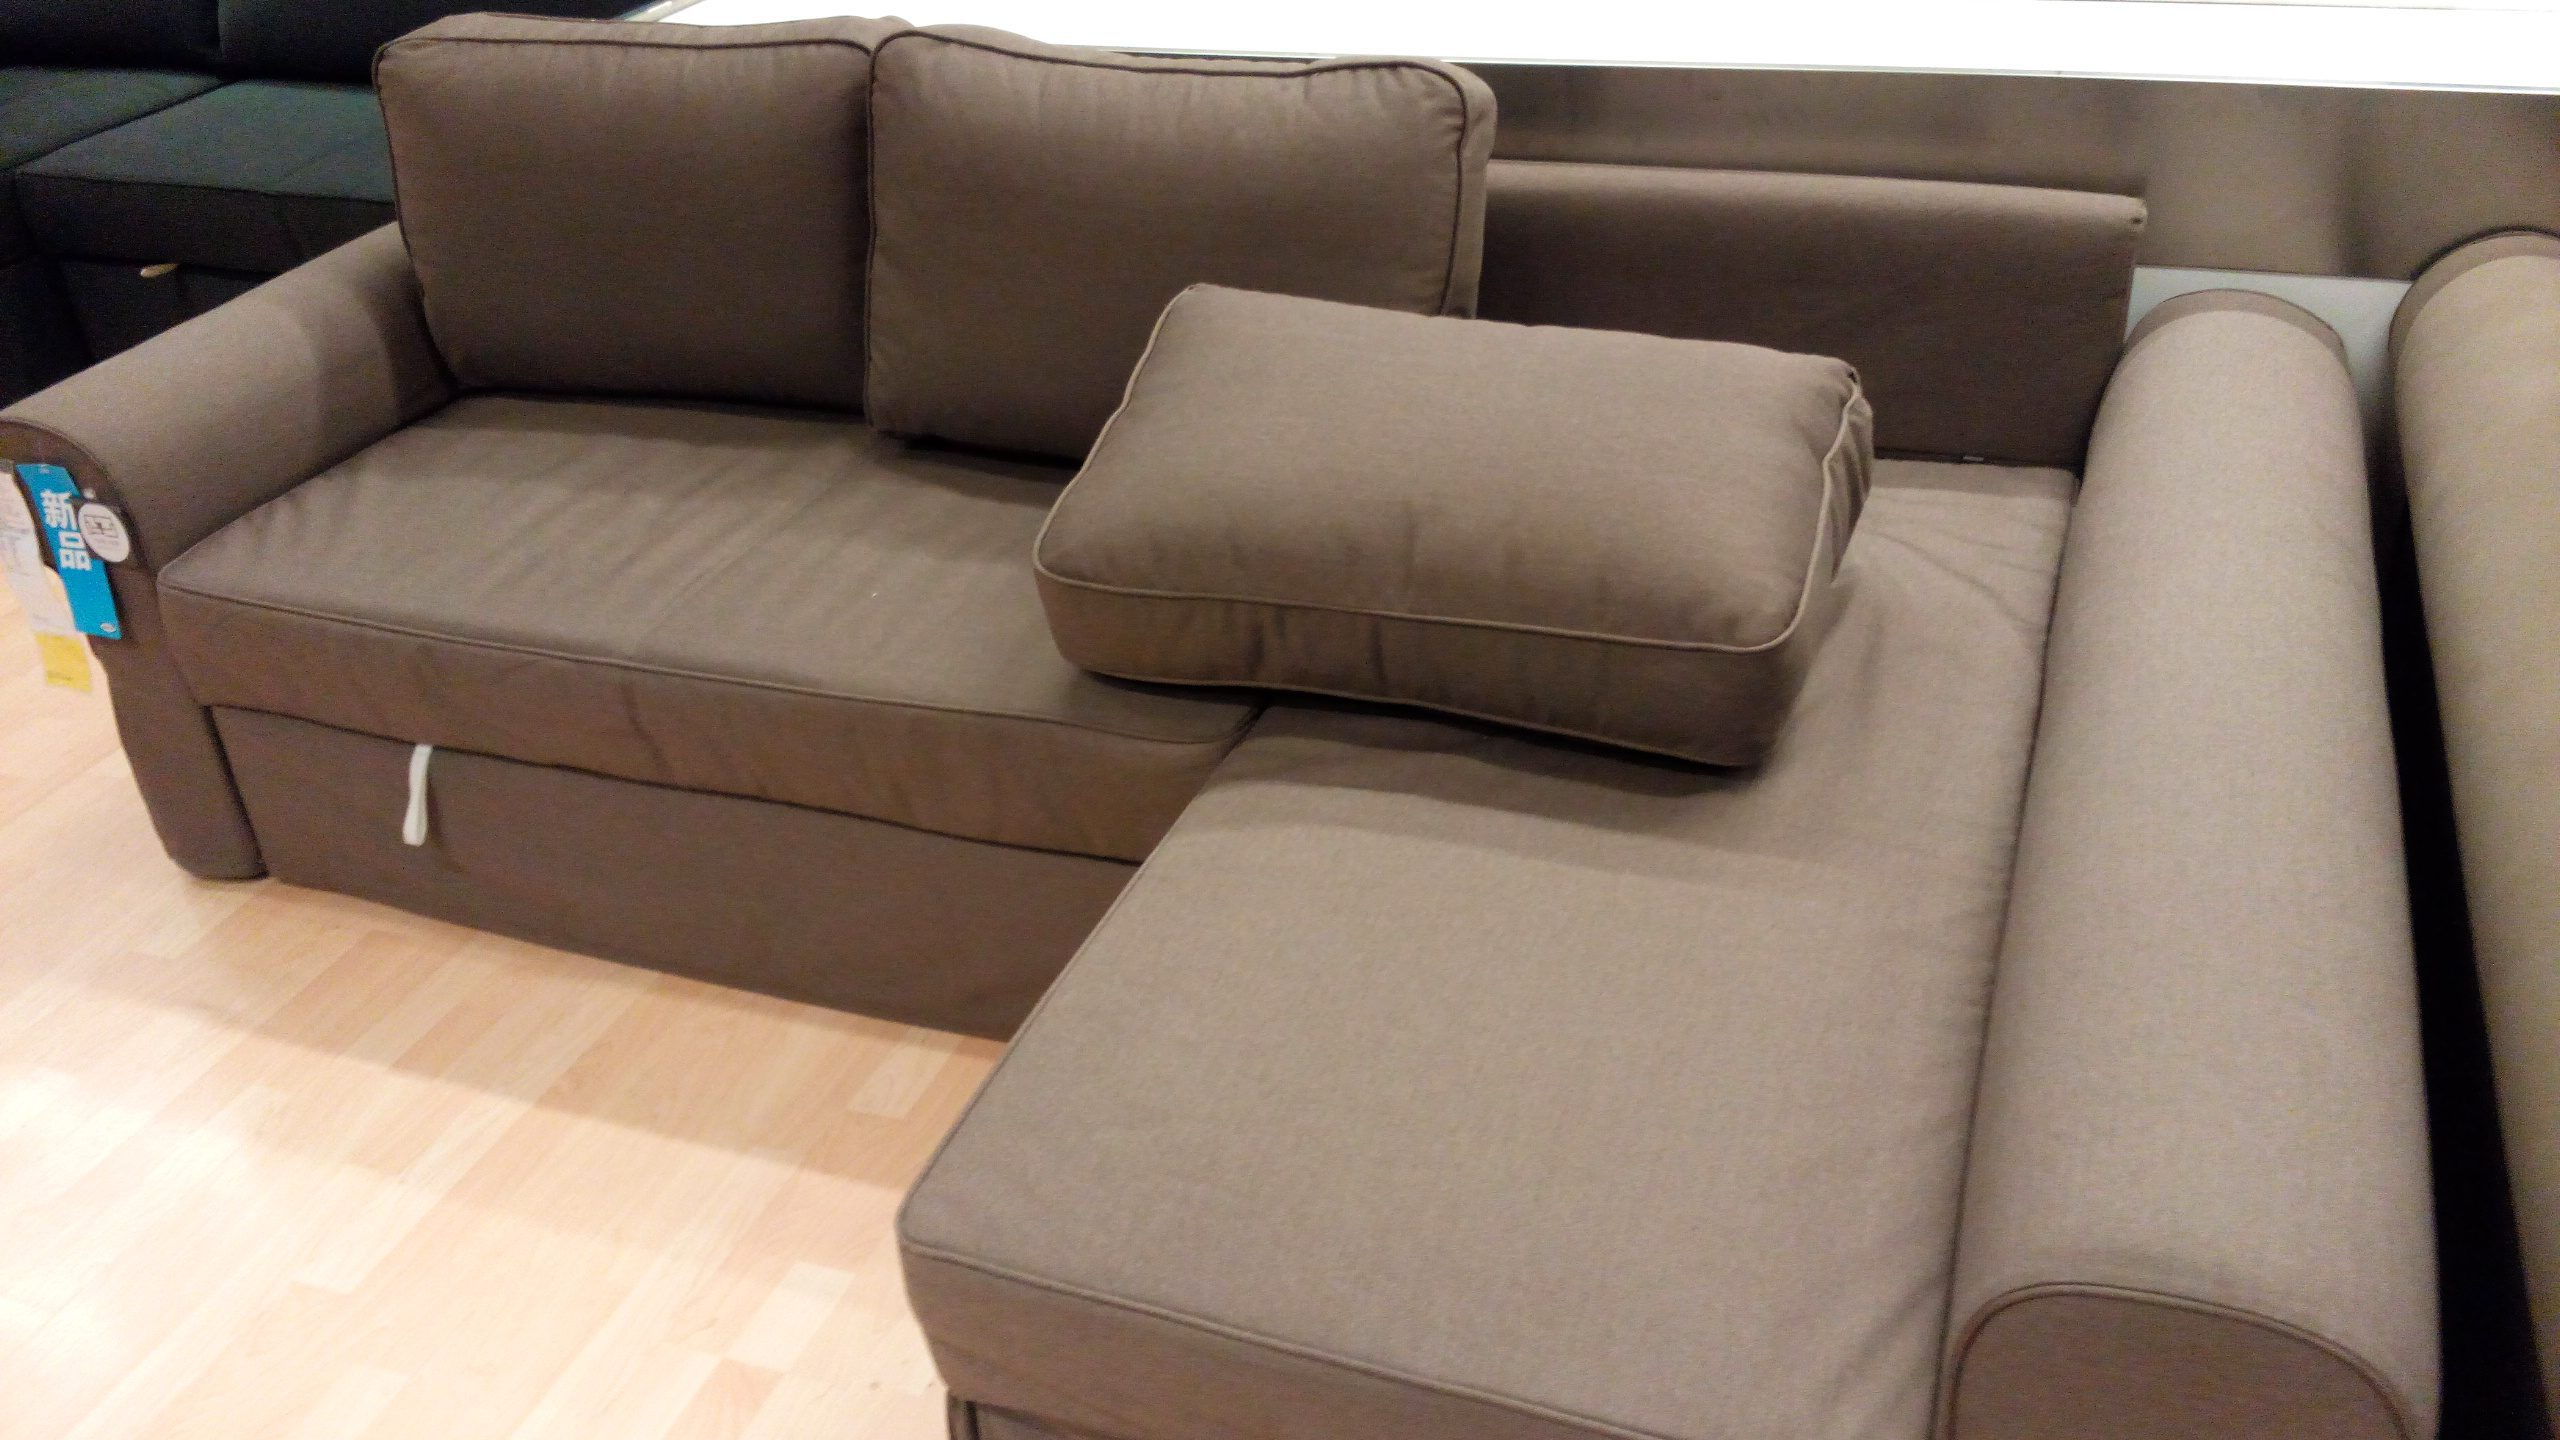 Slaapbank Ektorp Ikea Vilasund And Backabro Review Return Of The Sofa Bed Clones